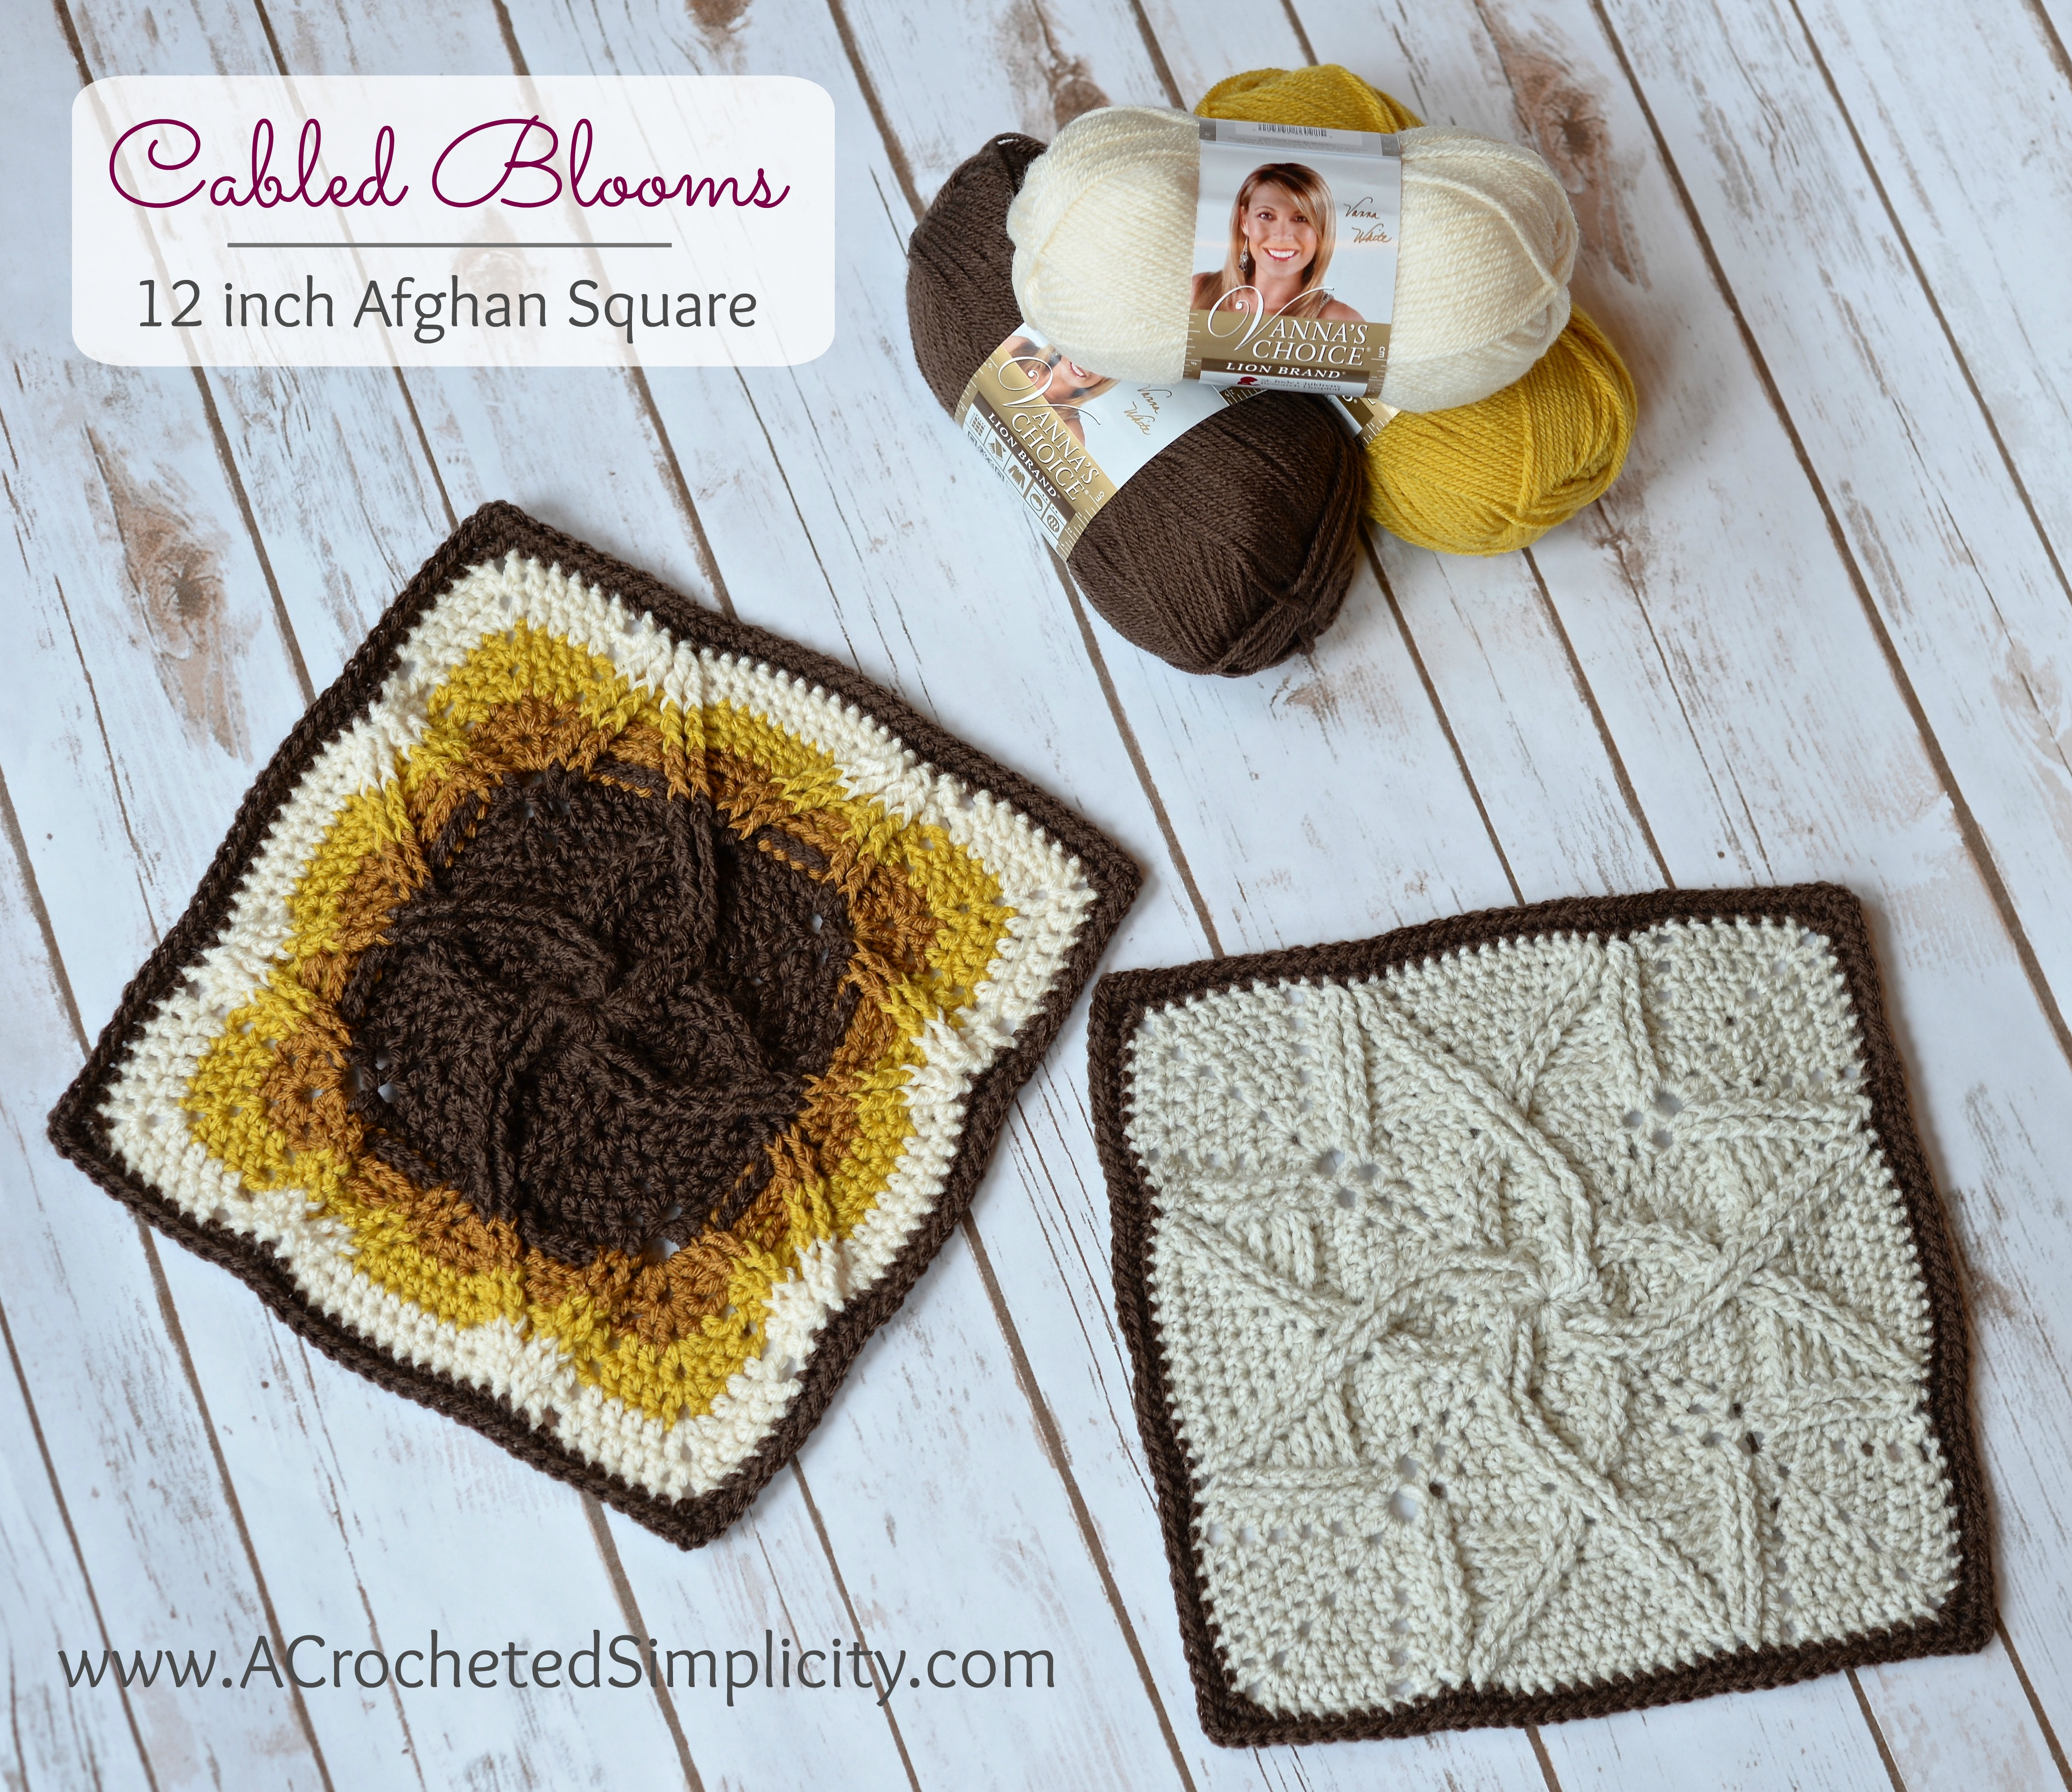 Free Crochet Pattern - Cabled Blooms 12 inch Afghan Square - A ...